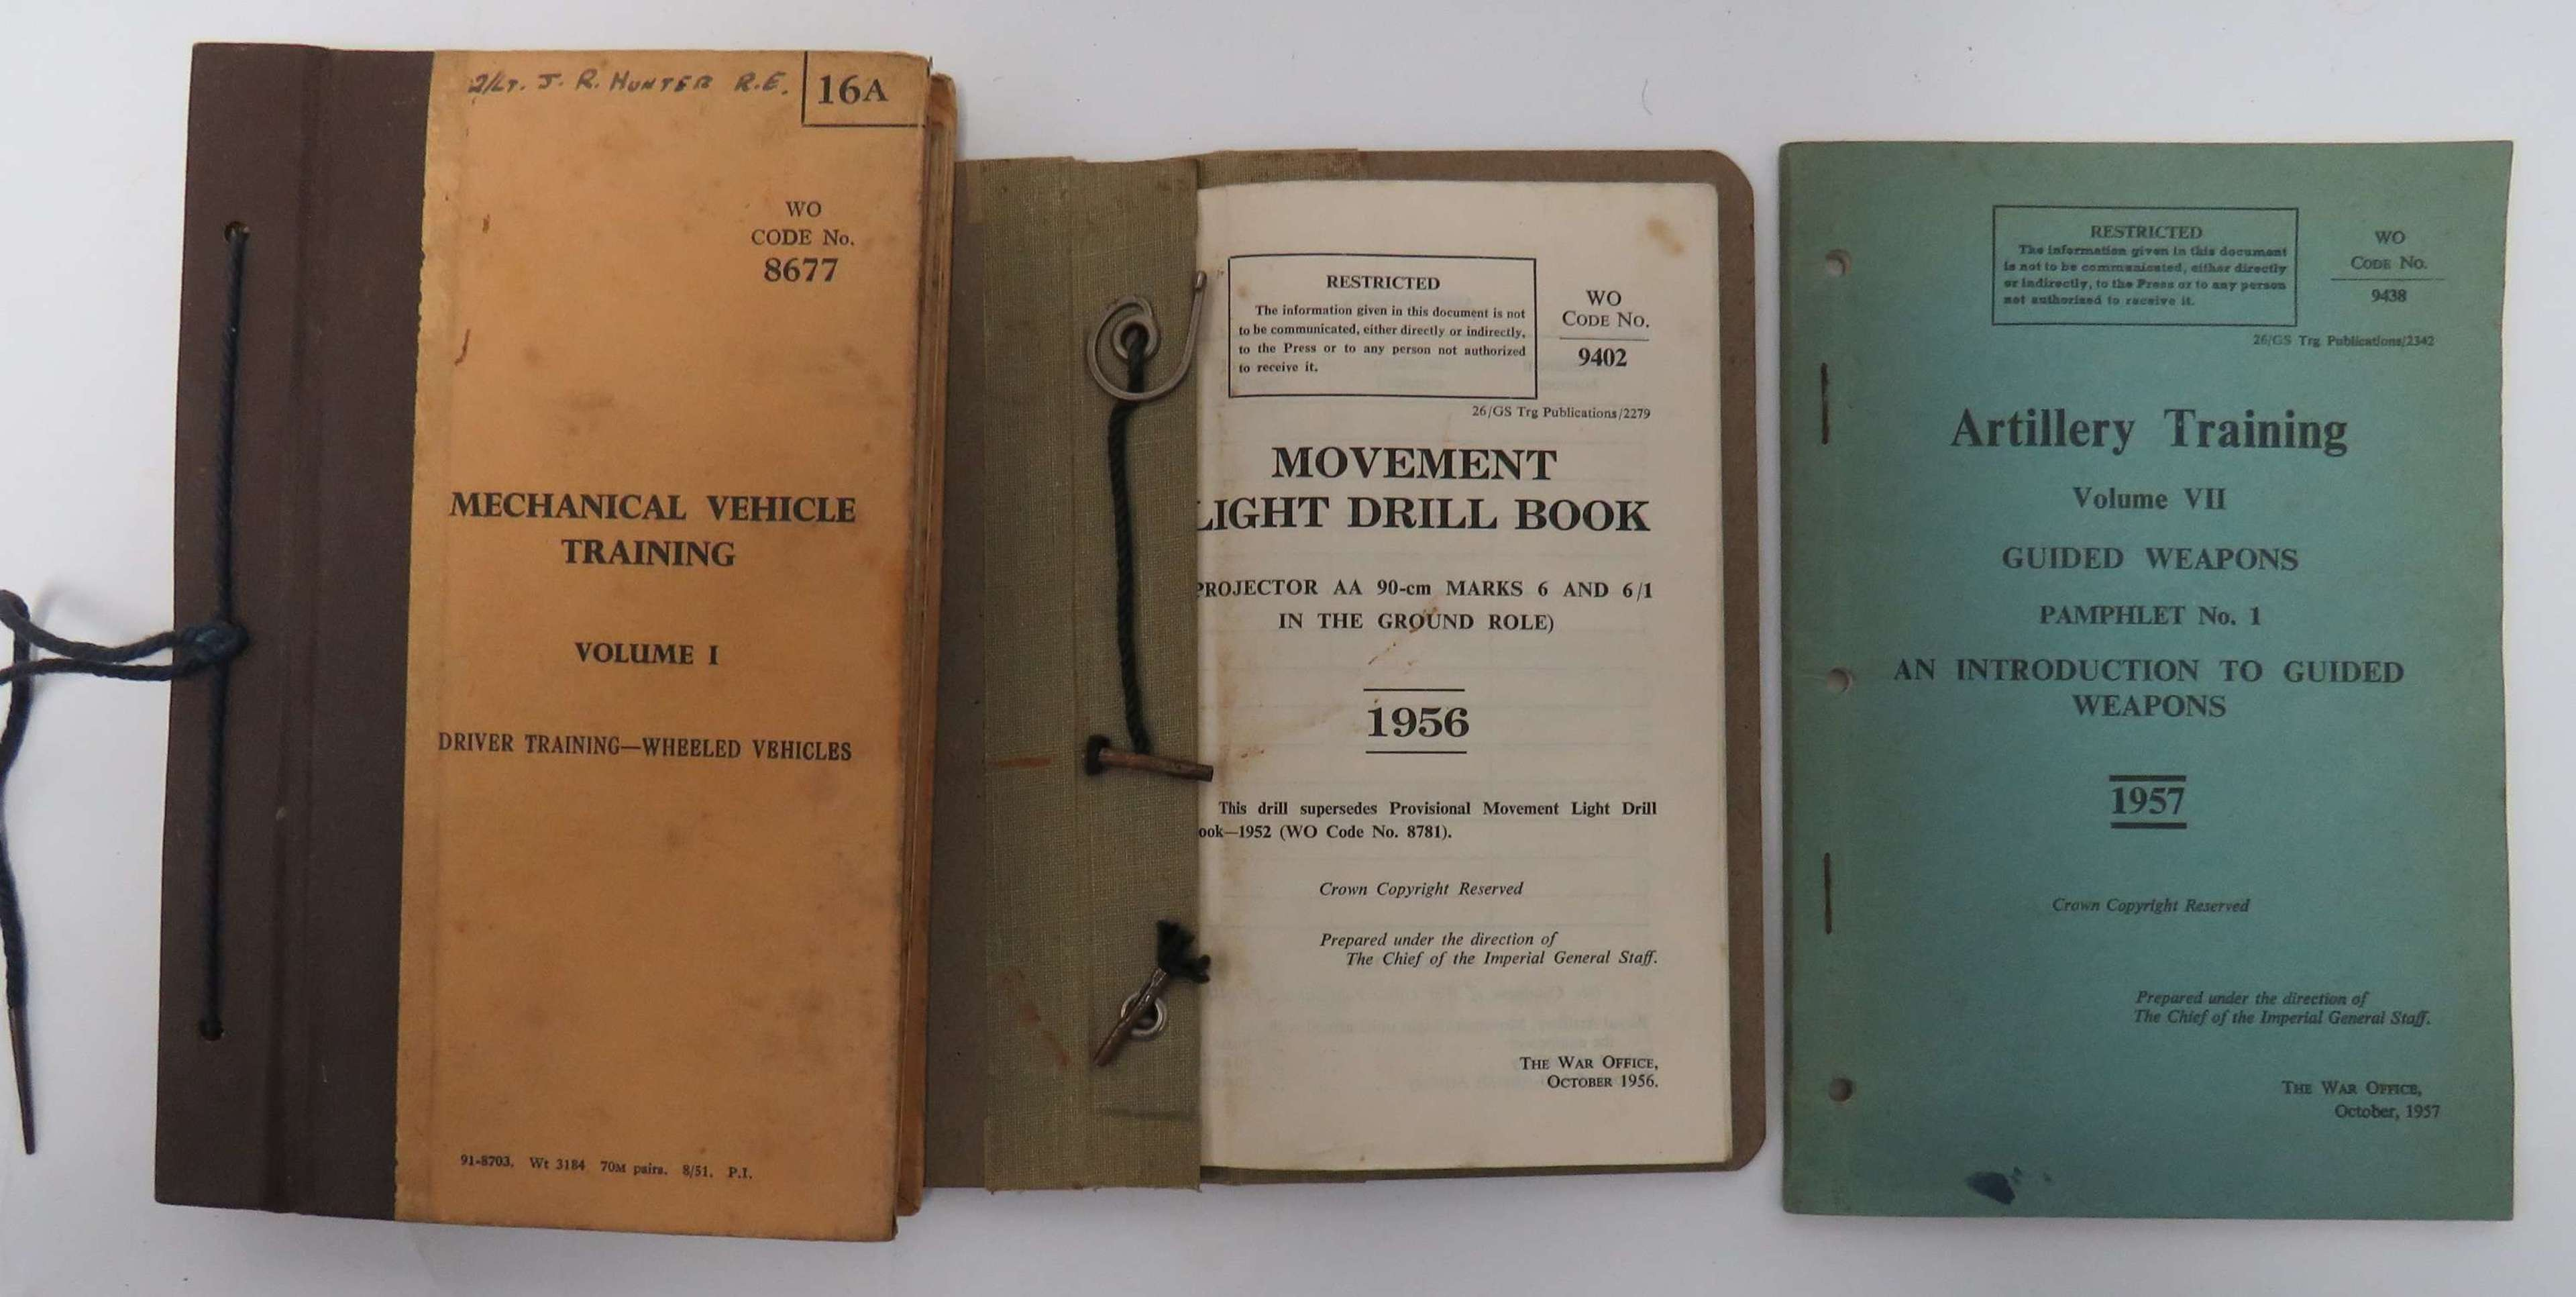 Guided Missiles and Other Manuals